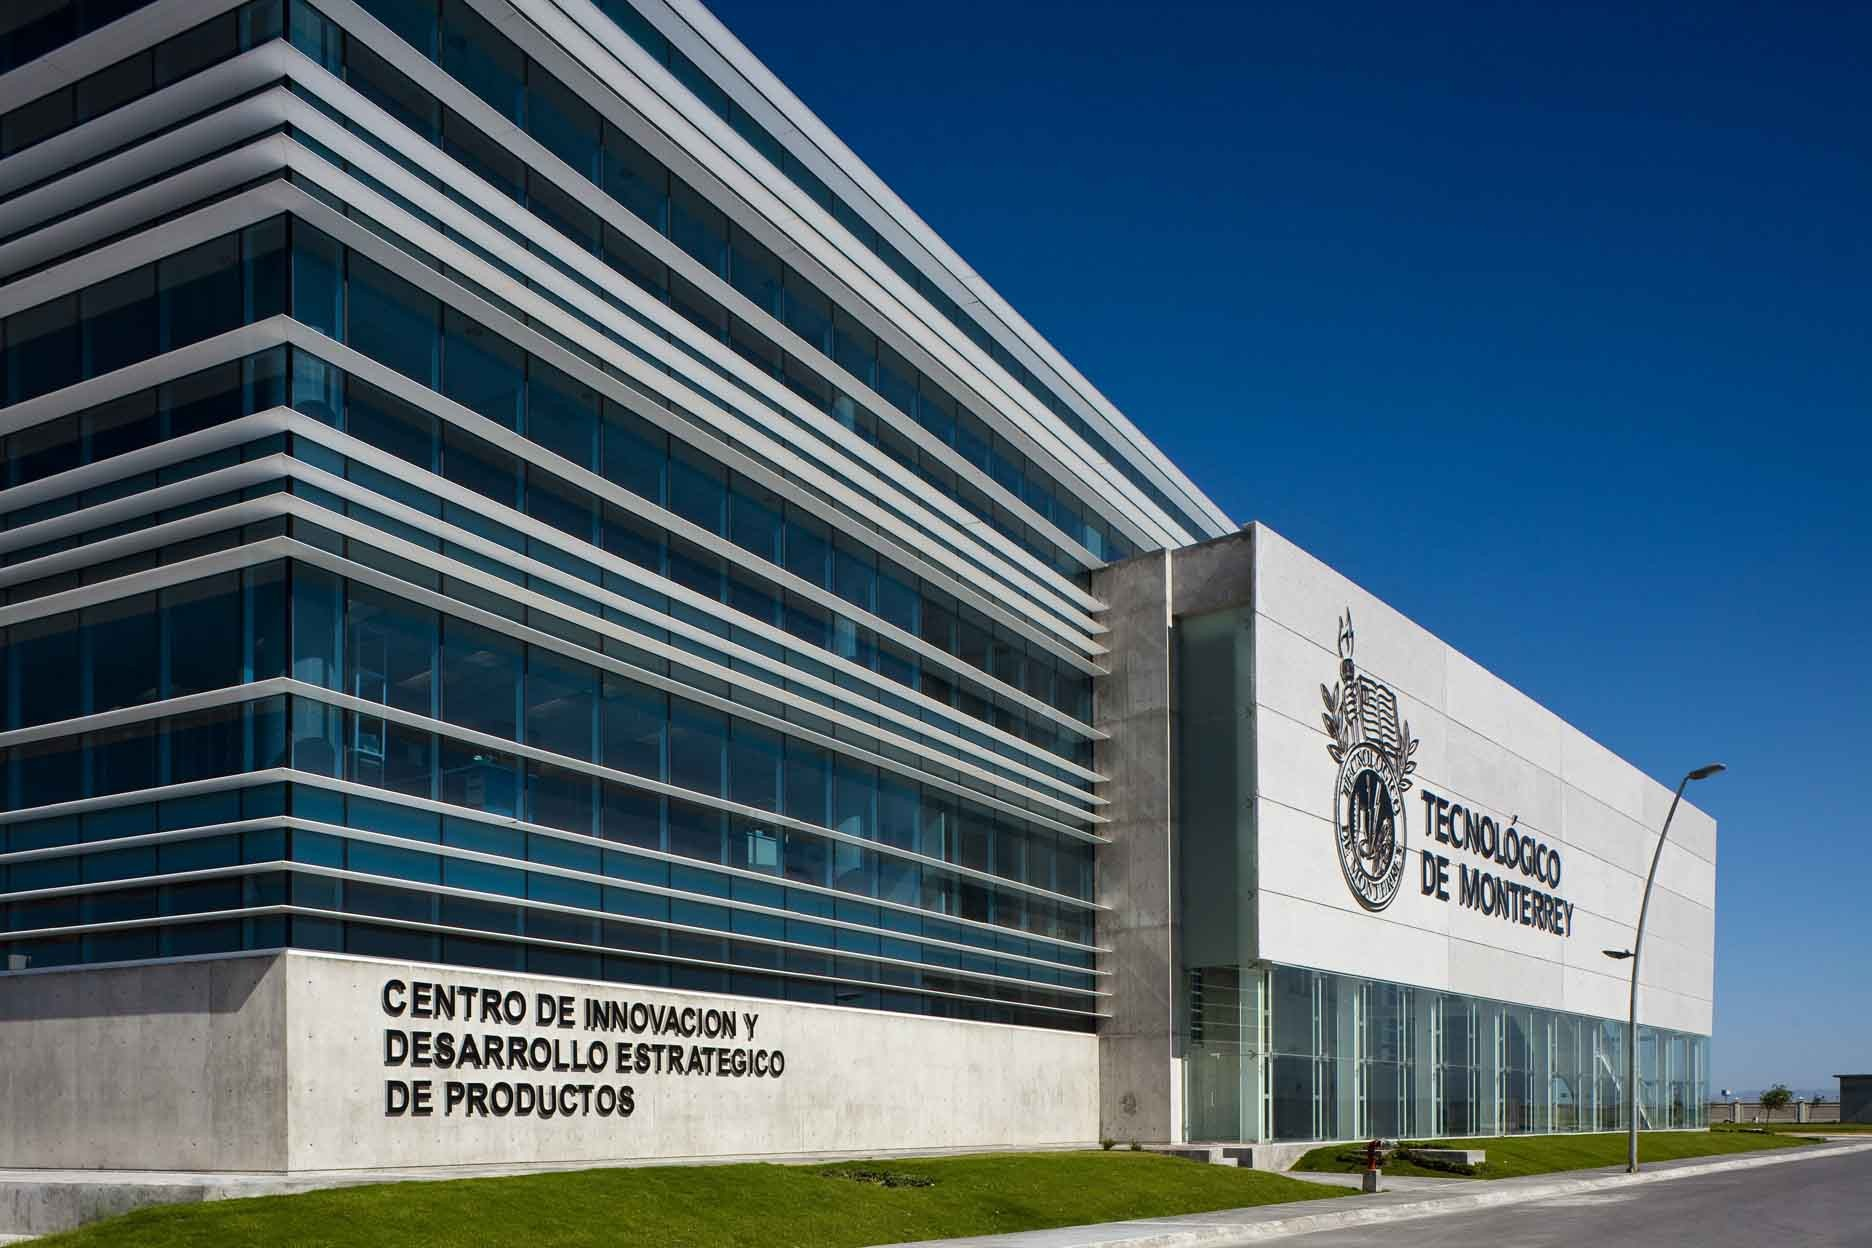 ITESM'S Center For Innovation and Strategic Development of Products (CIDEP), © Francisco Lubbert